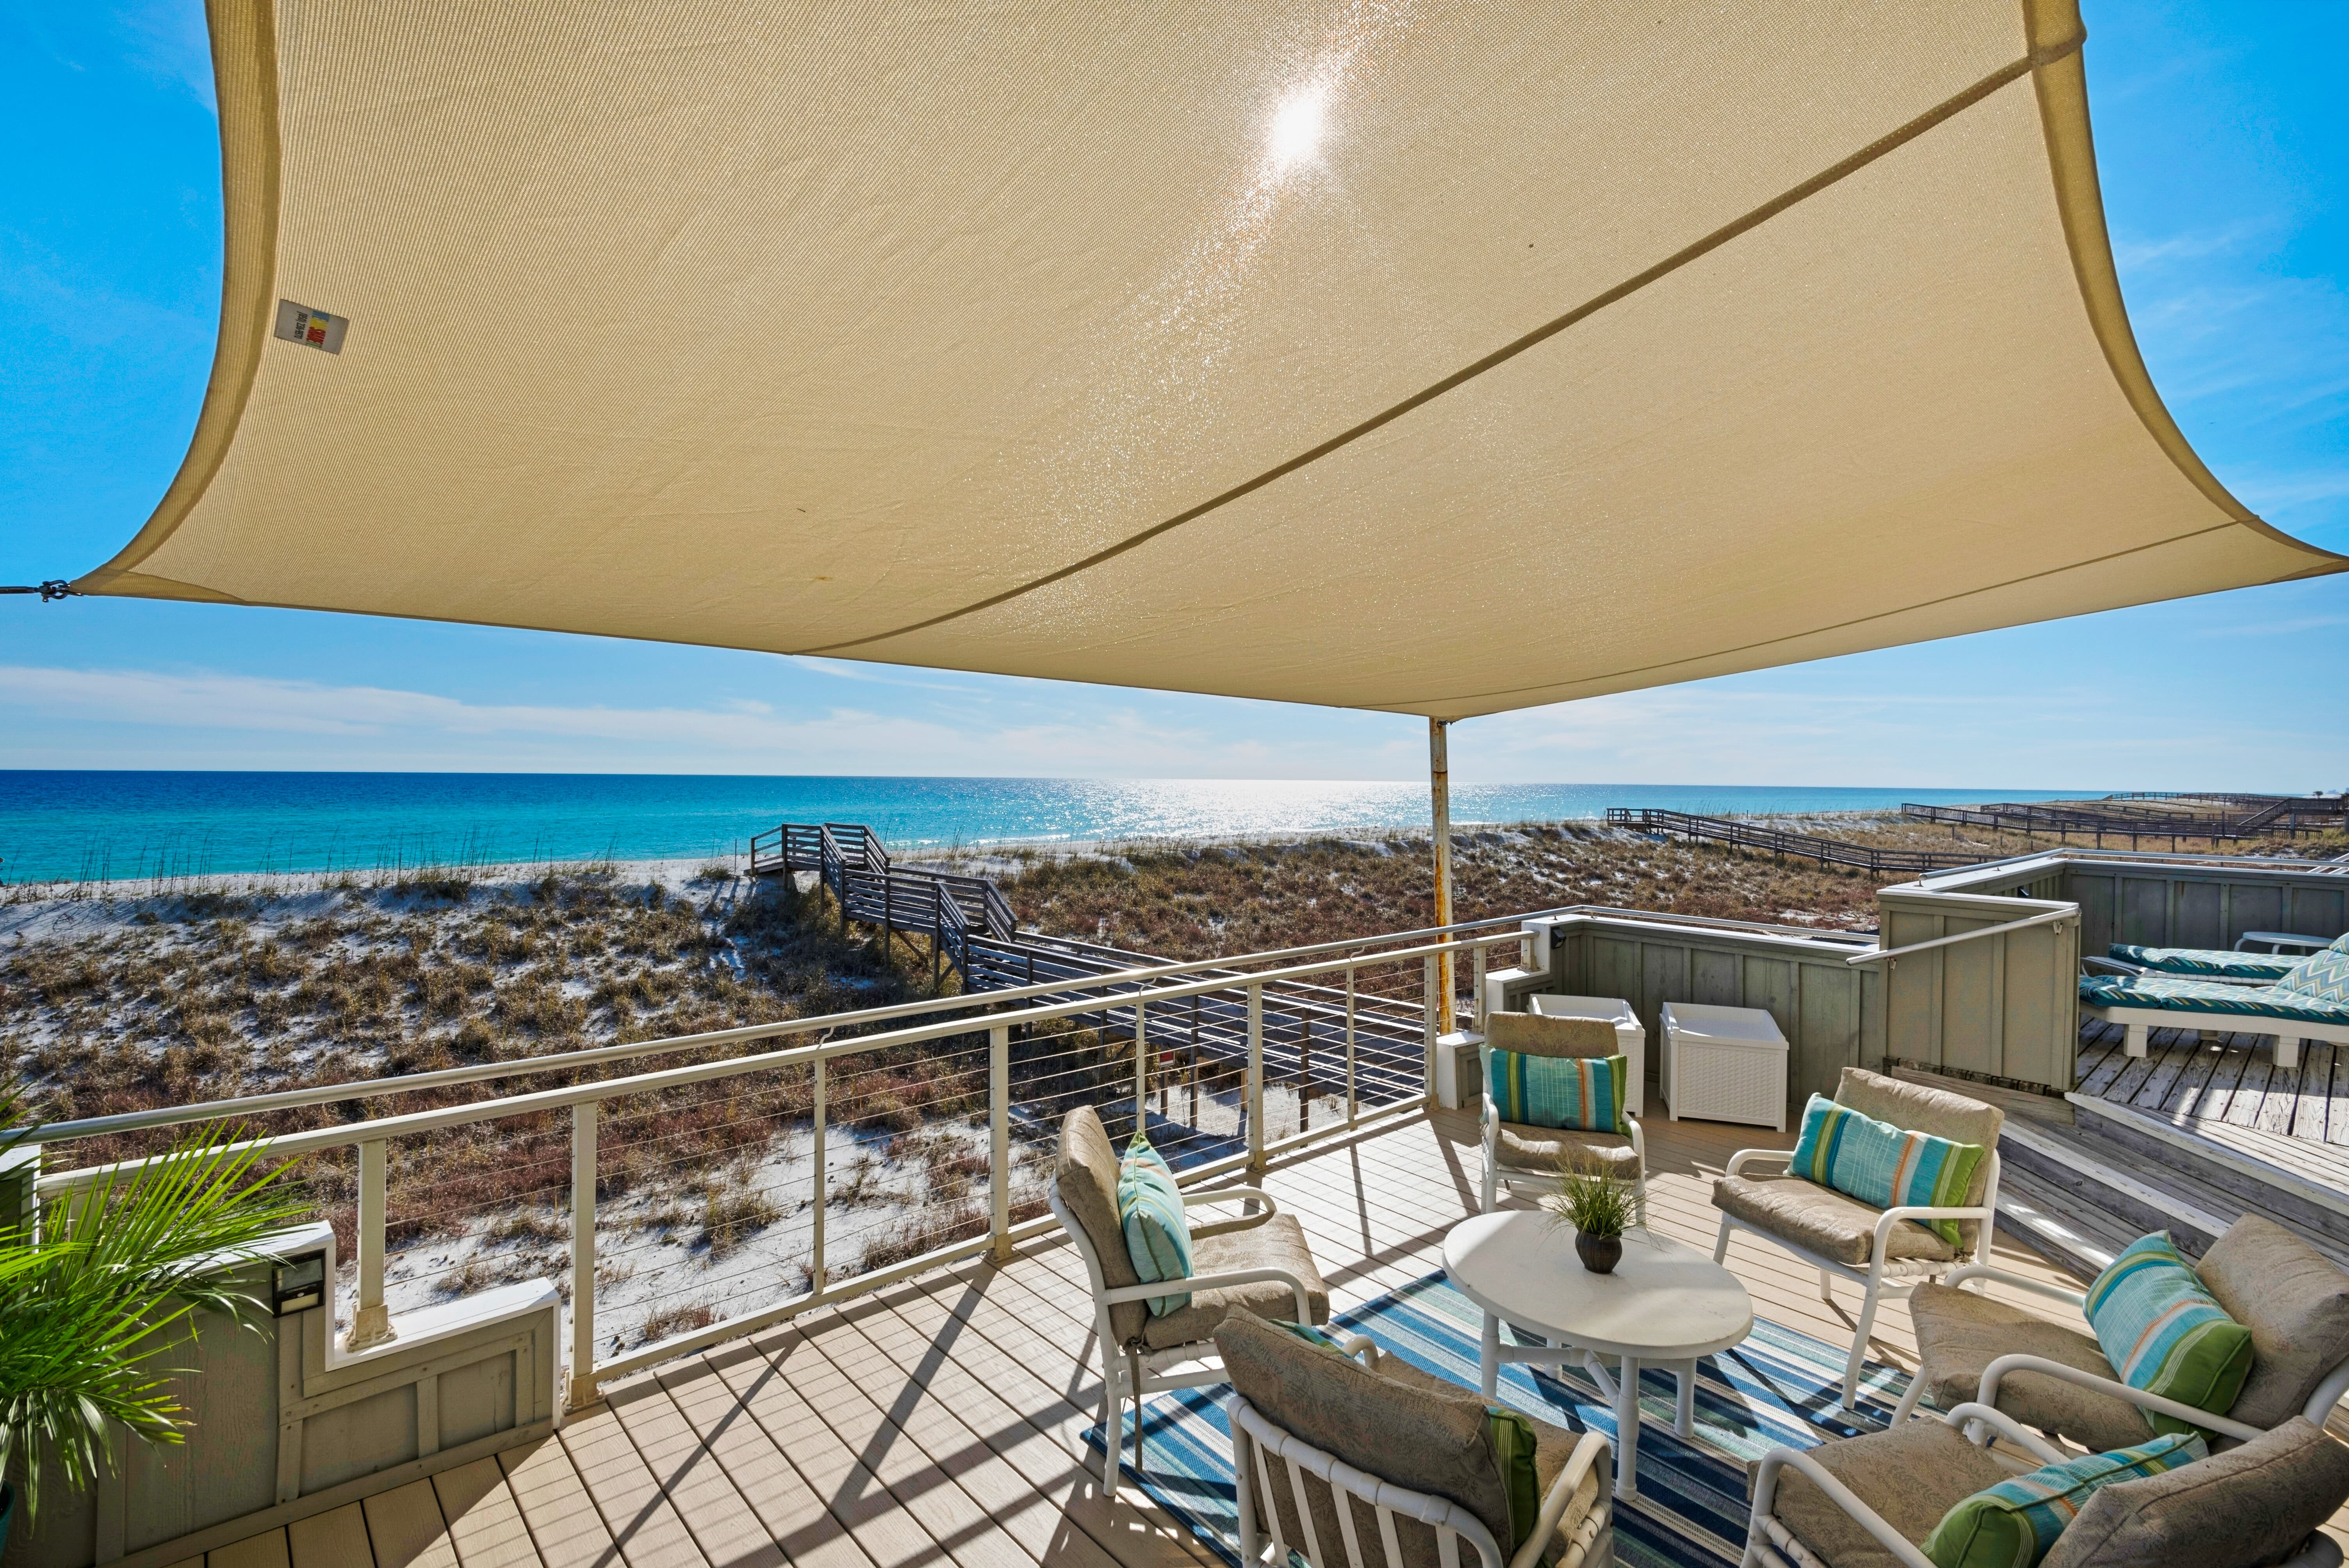 7527 Gulf Blvd - The Oyster House/Cottage rental in Navarre Beach House Rentals in Navarre Florida - #75